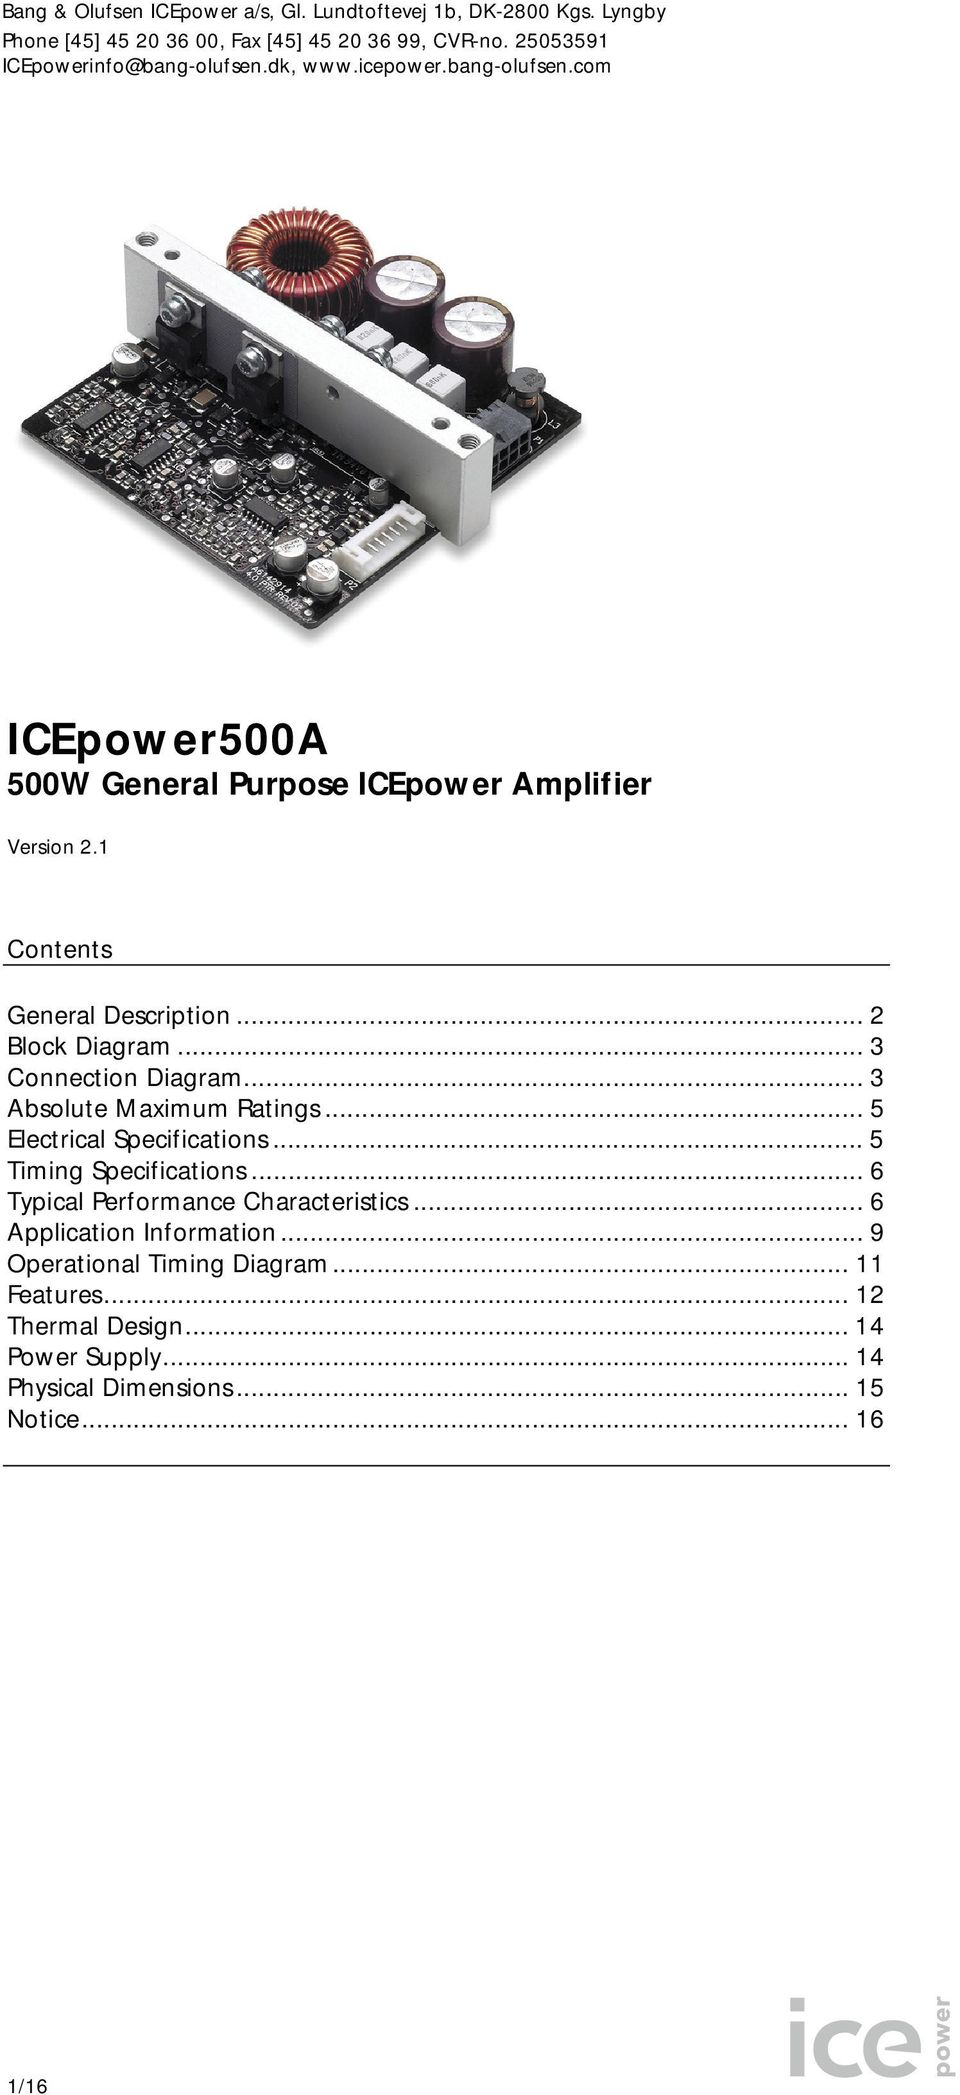 ICEpower500A 500W General Purpose ICEpower Amplifier - PDF